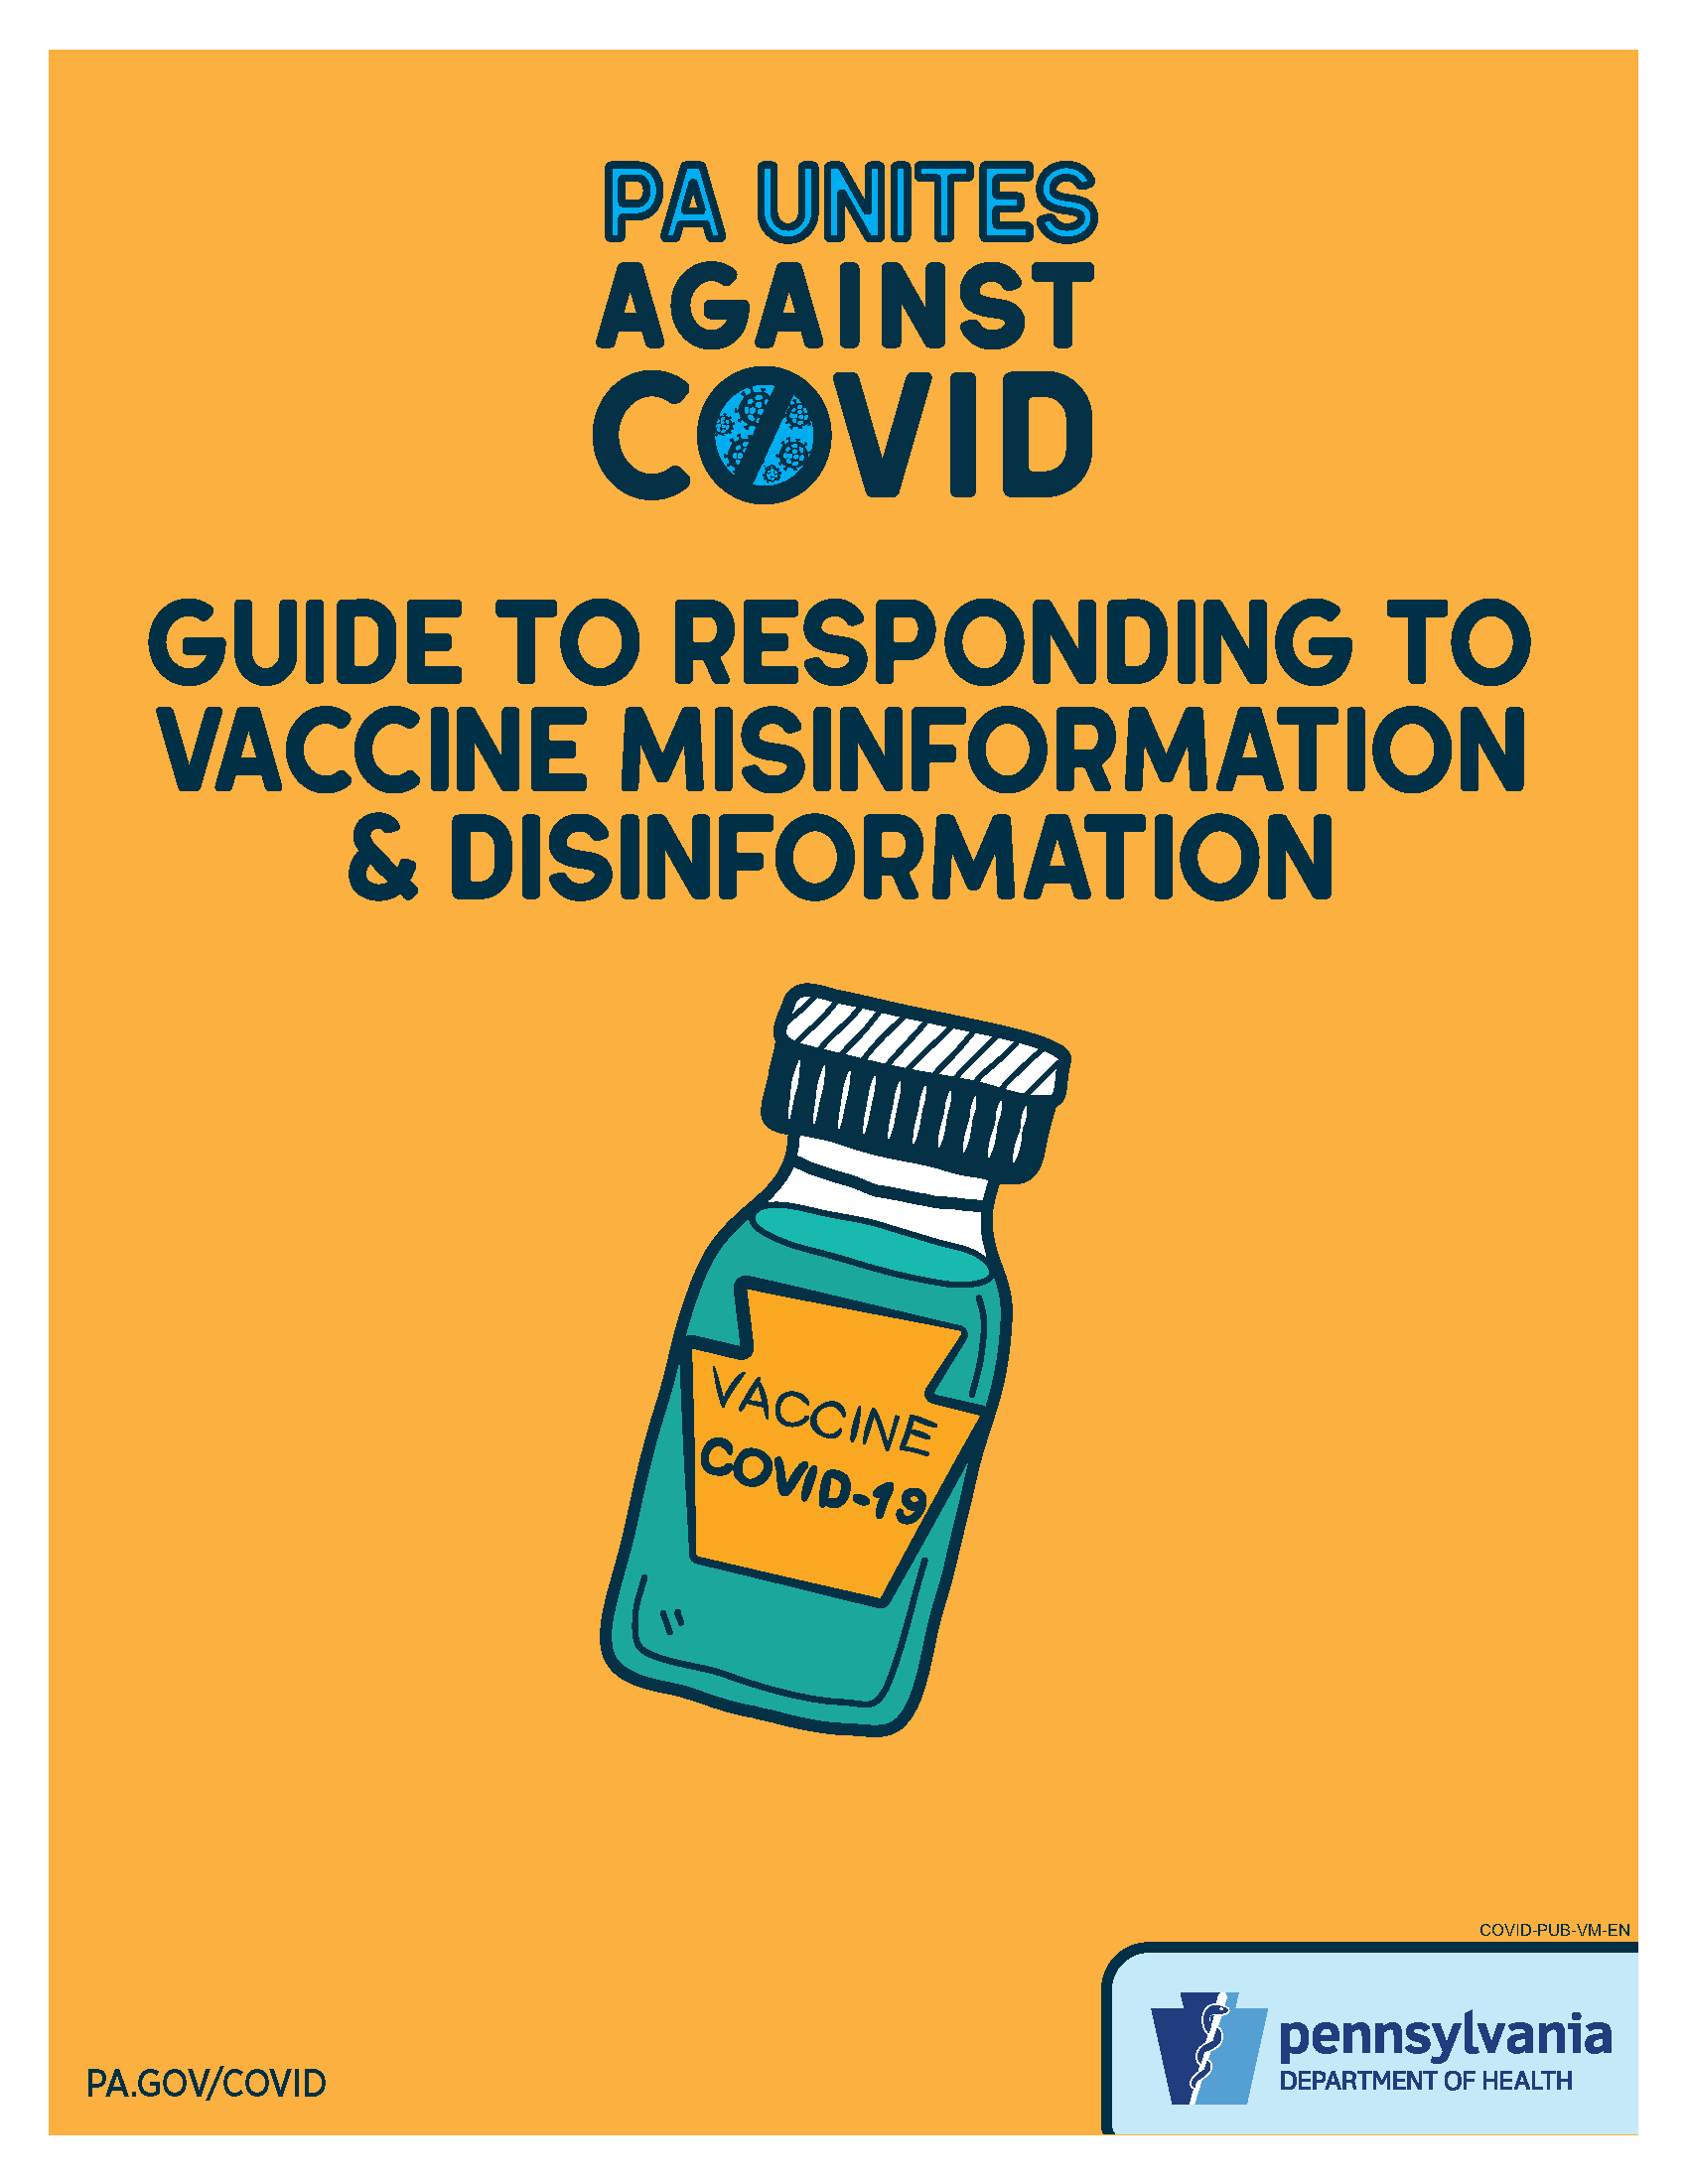 Guide to Responding to Vaccine Misinformation & Disinformation